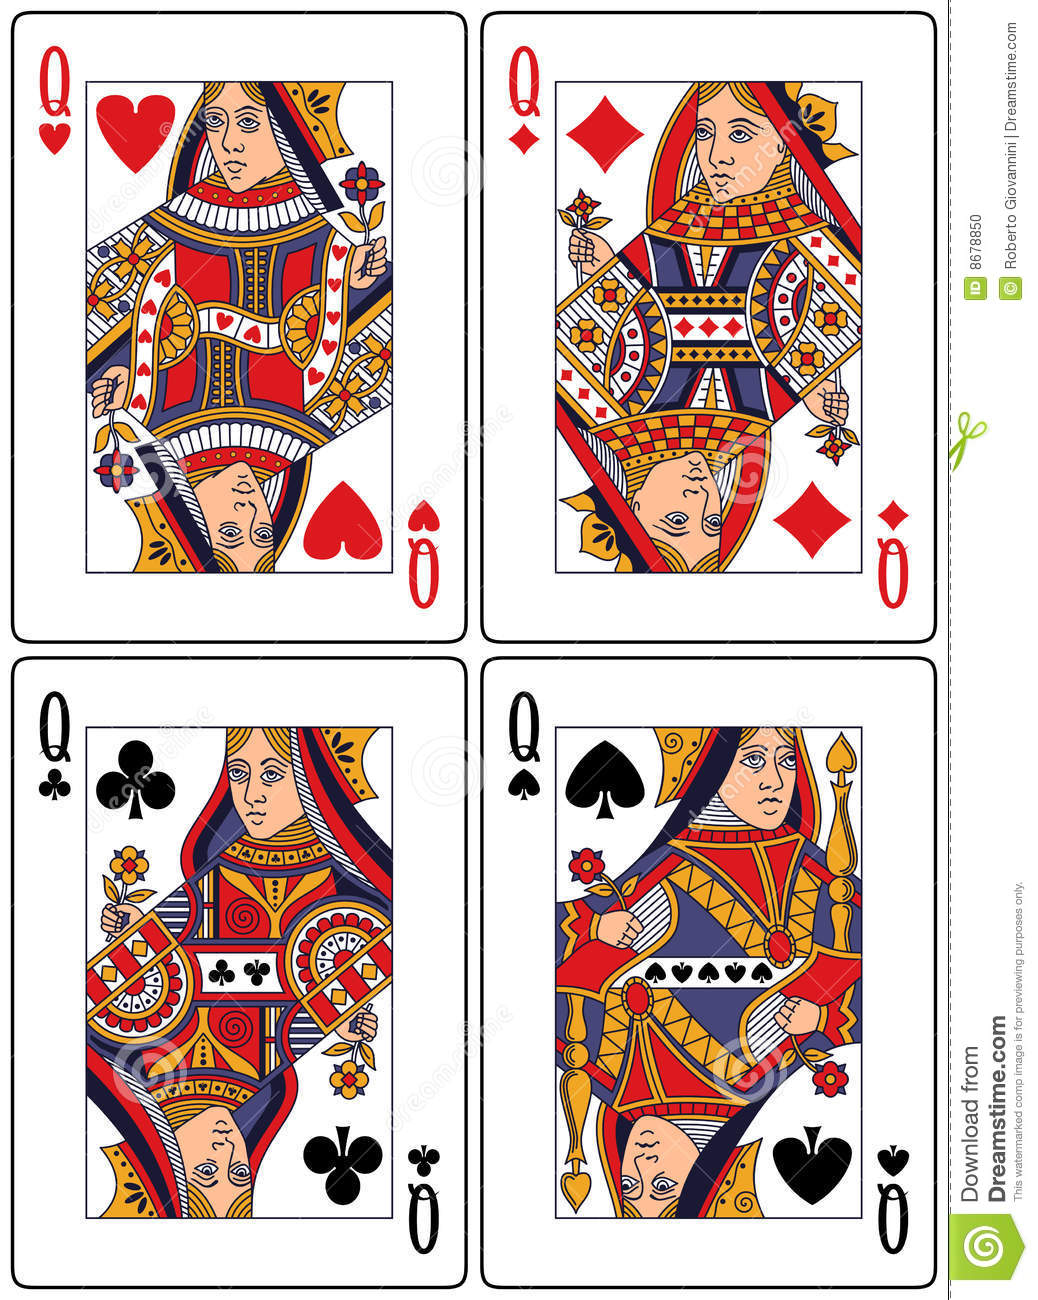 how to set up solitaire with one deck of cards